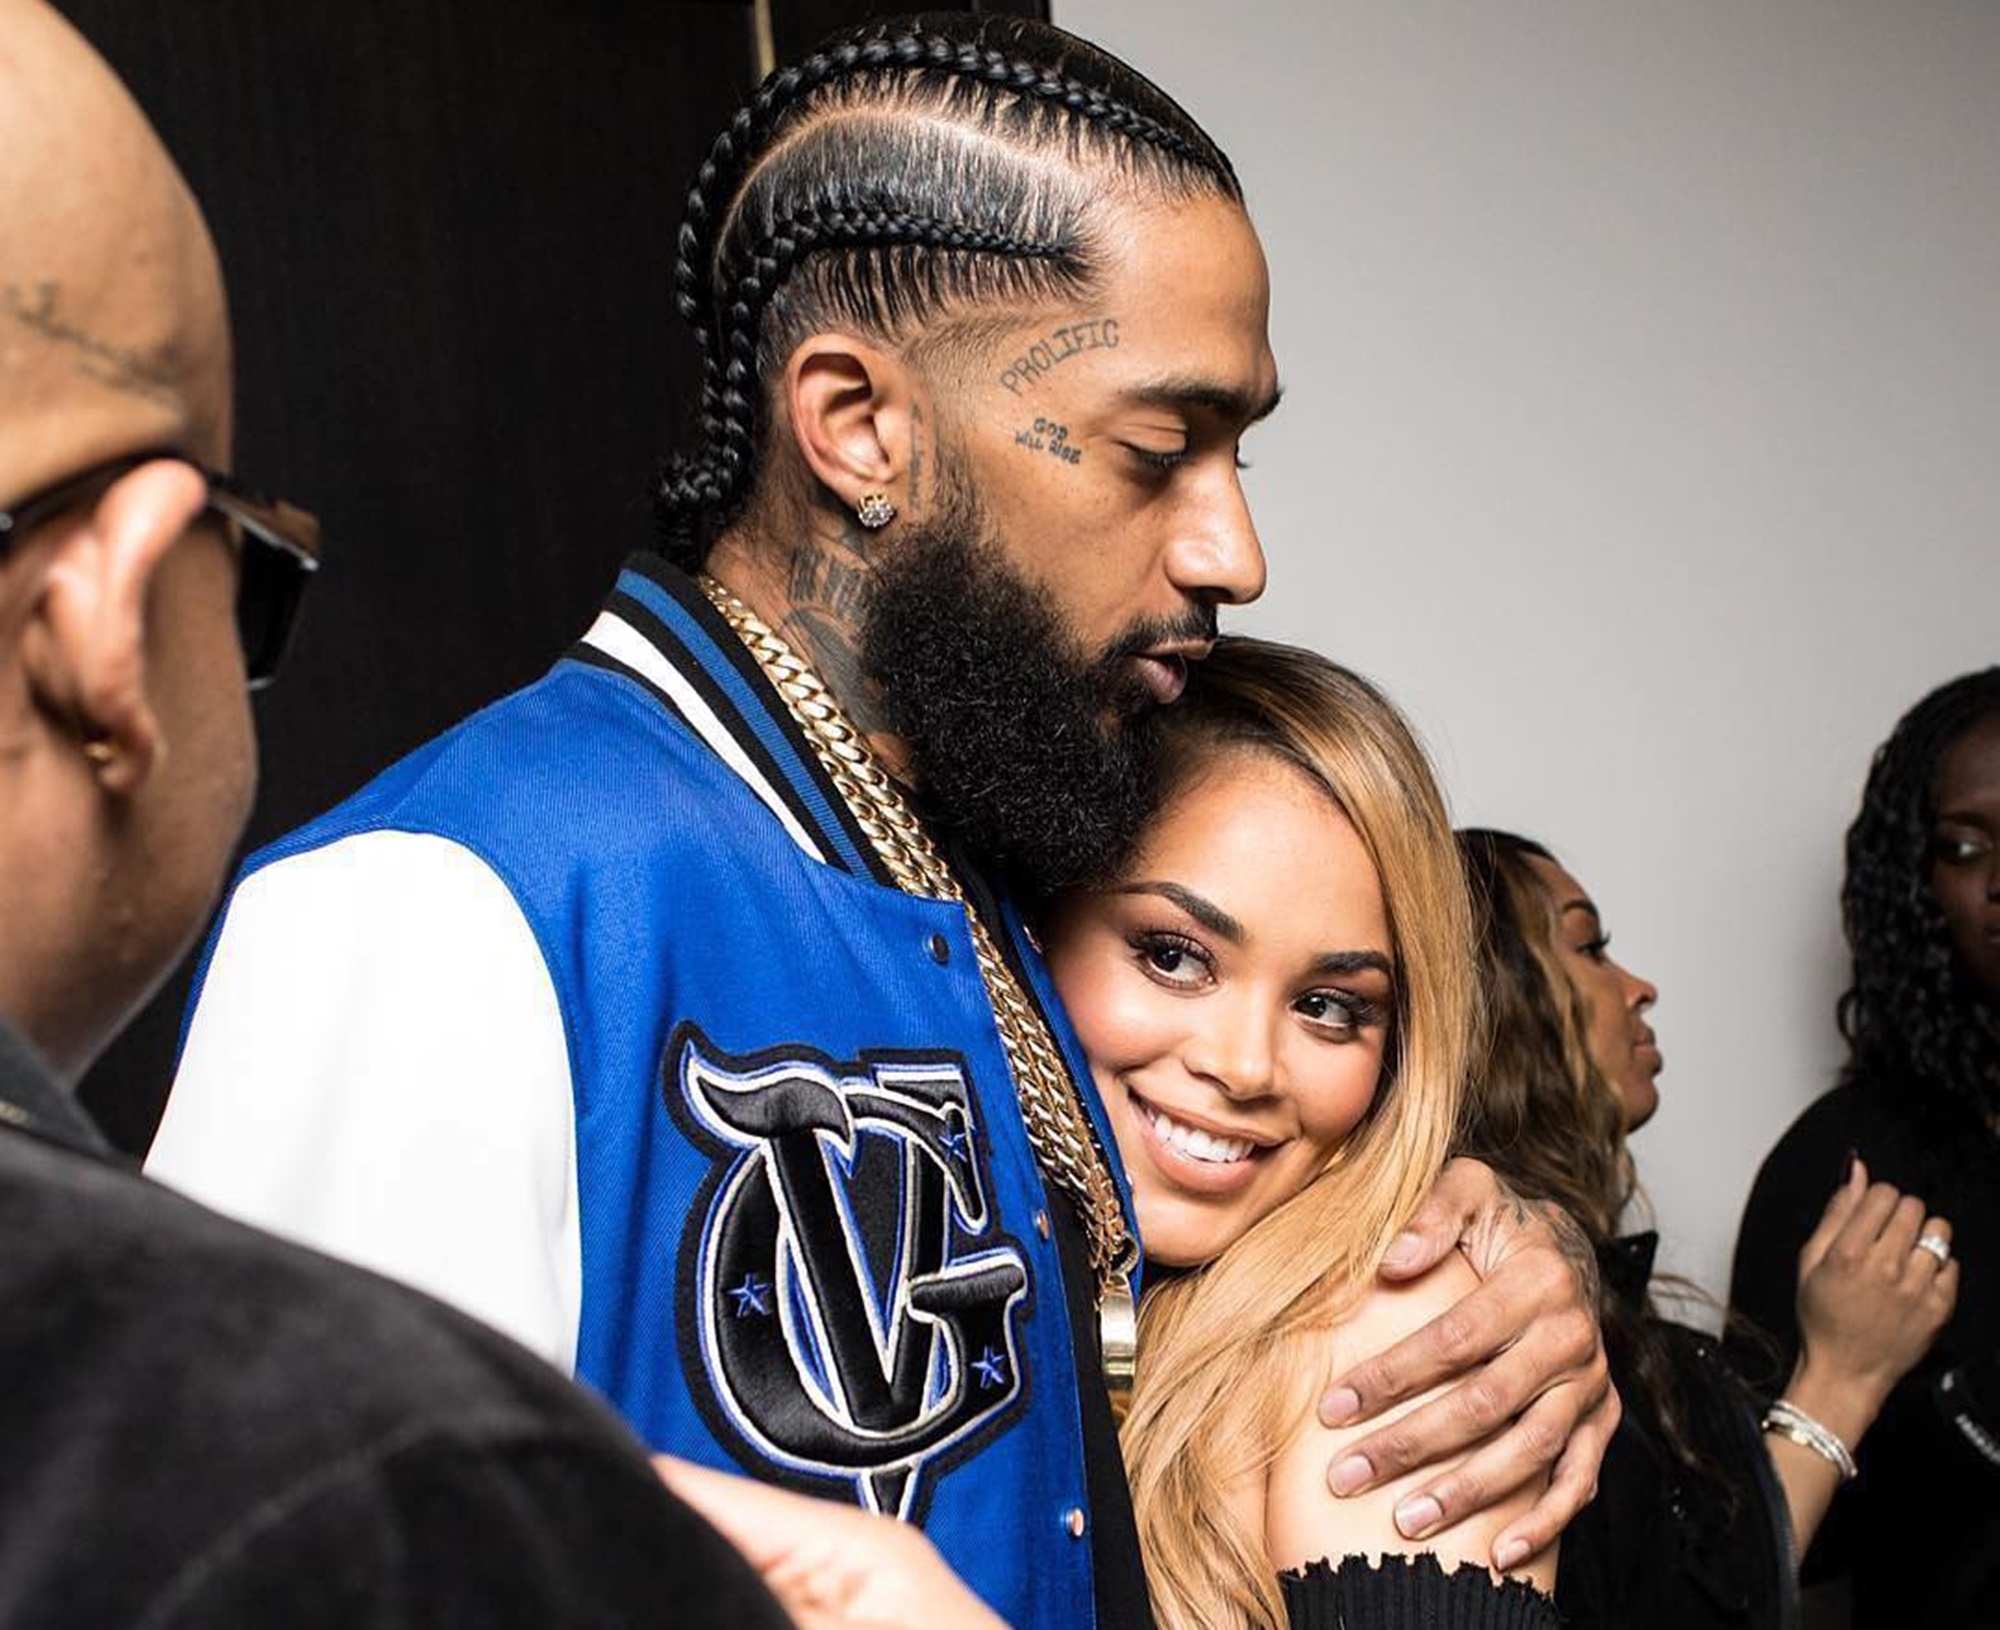 Nipsy Hussle Lauren London The Game